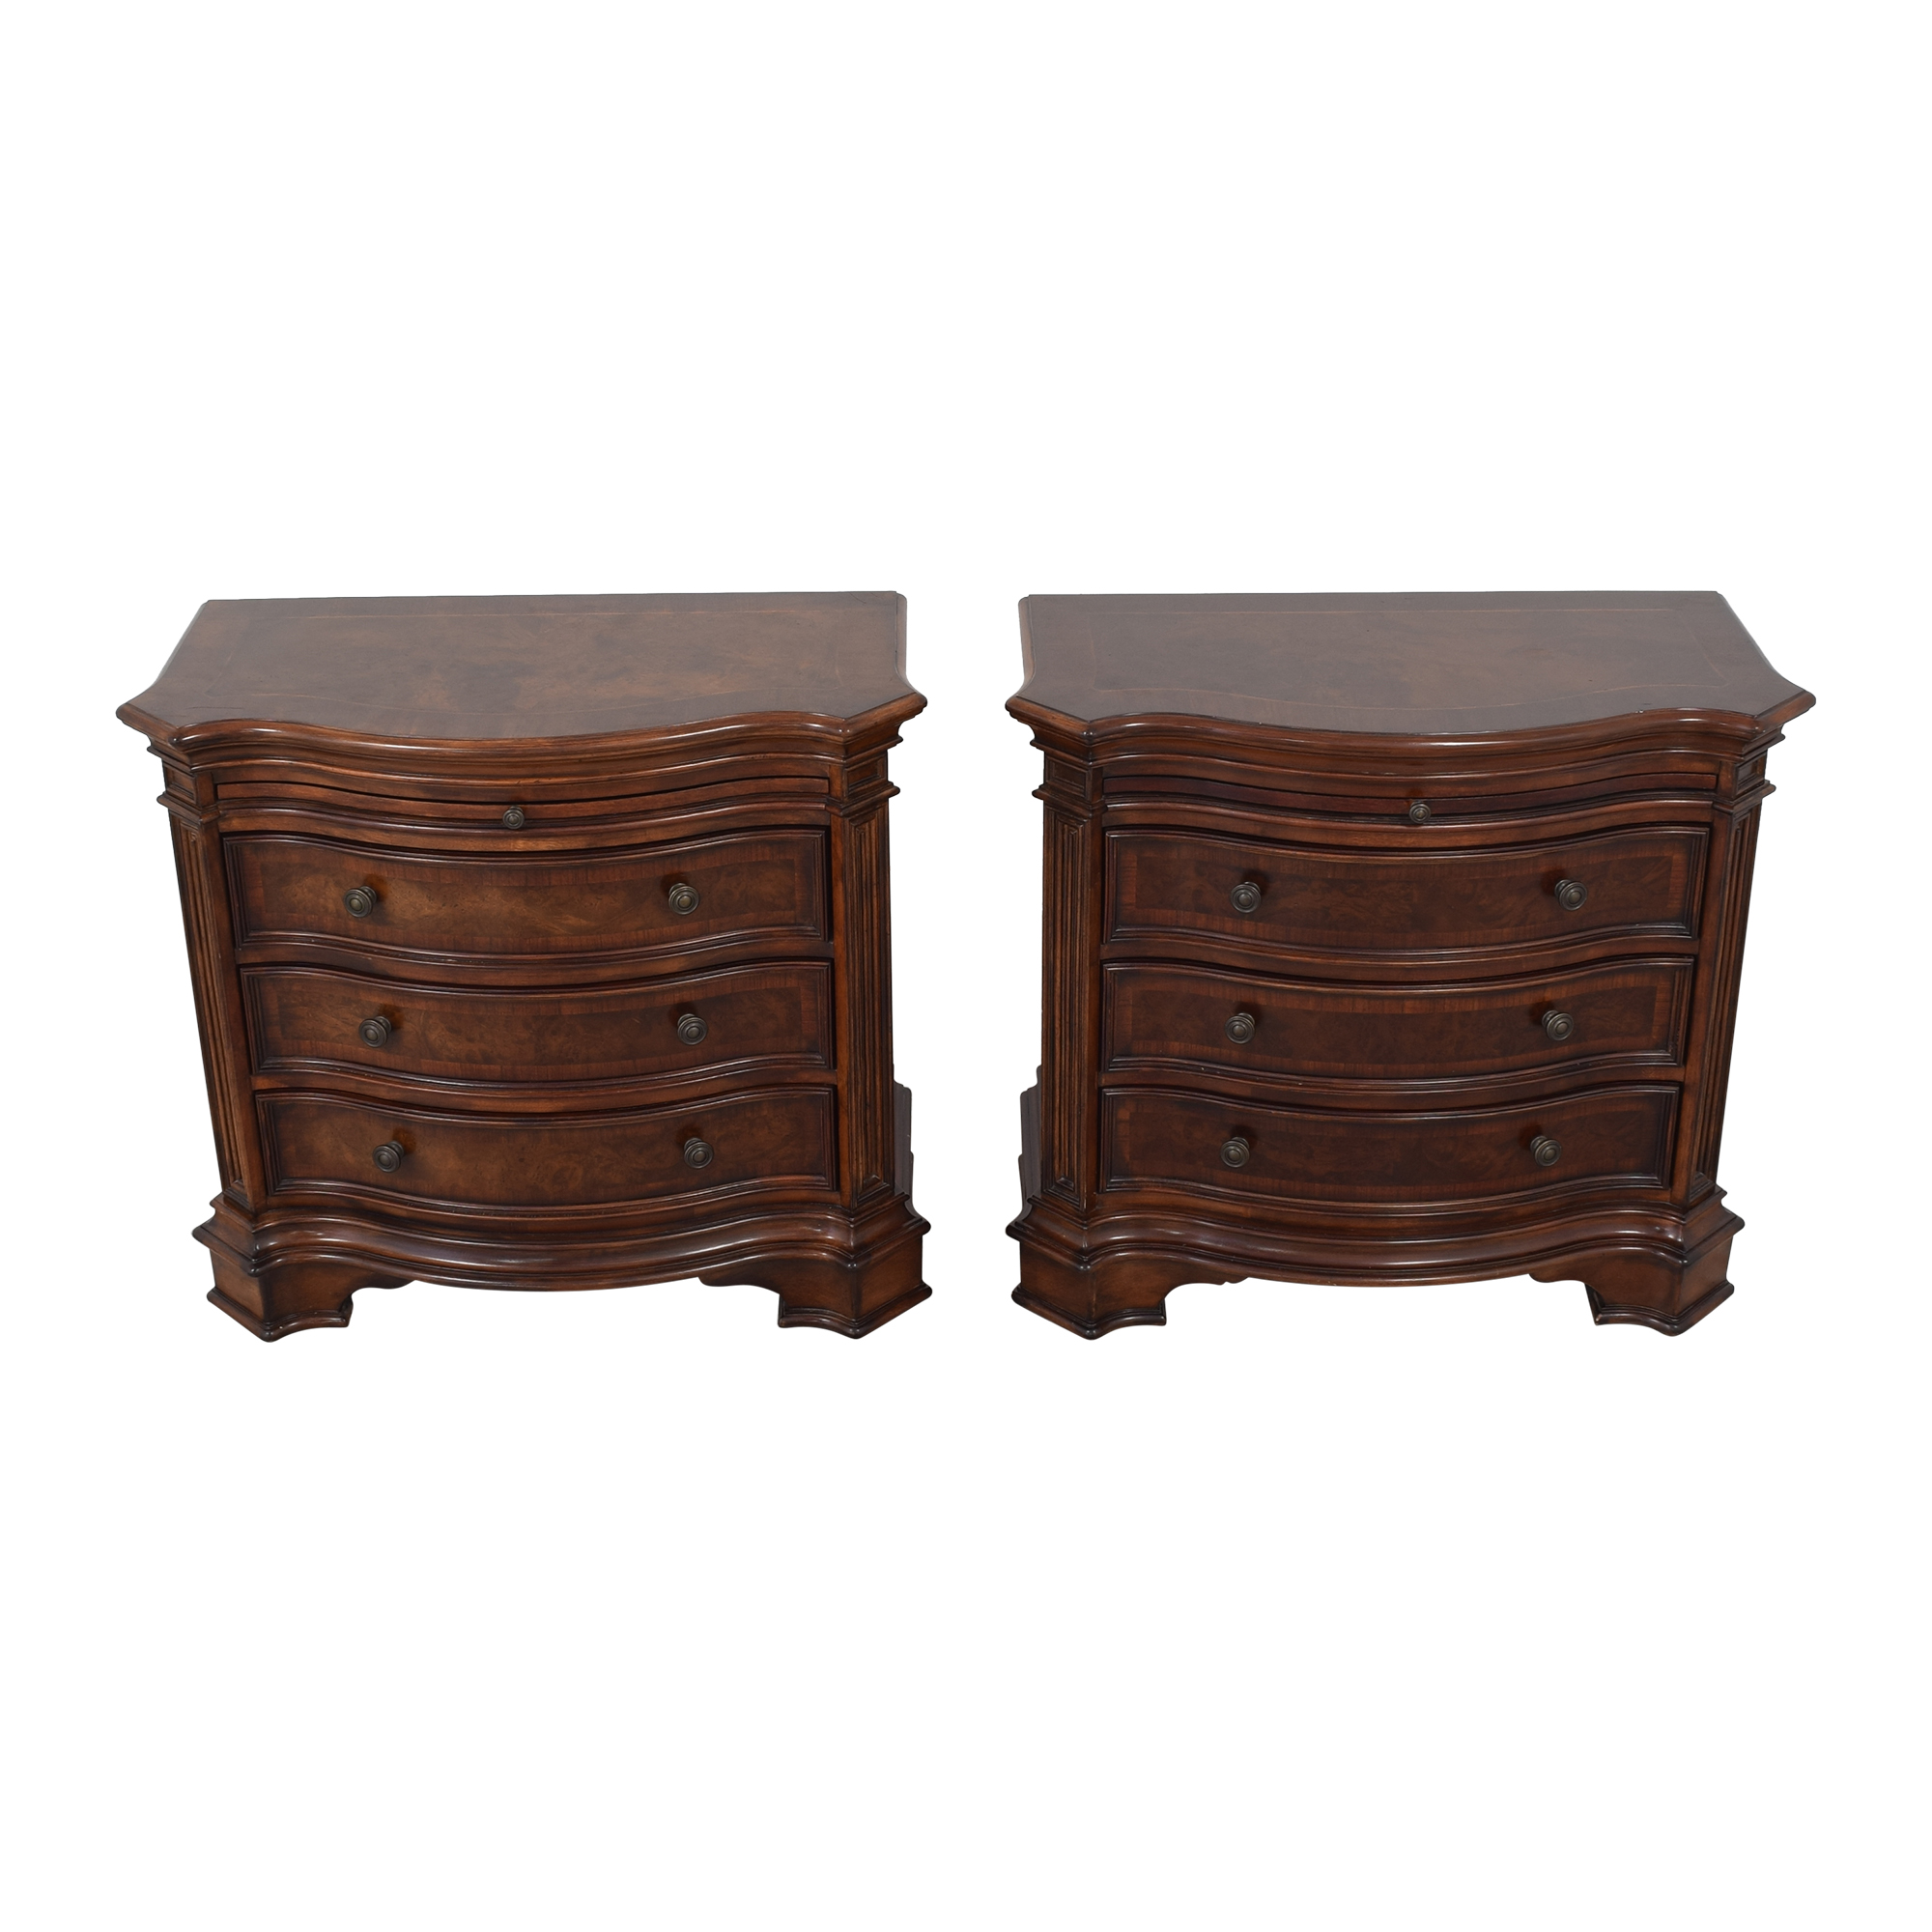 Broyhill Furniture Broyhill Bedside Tables brown